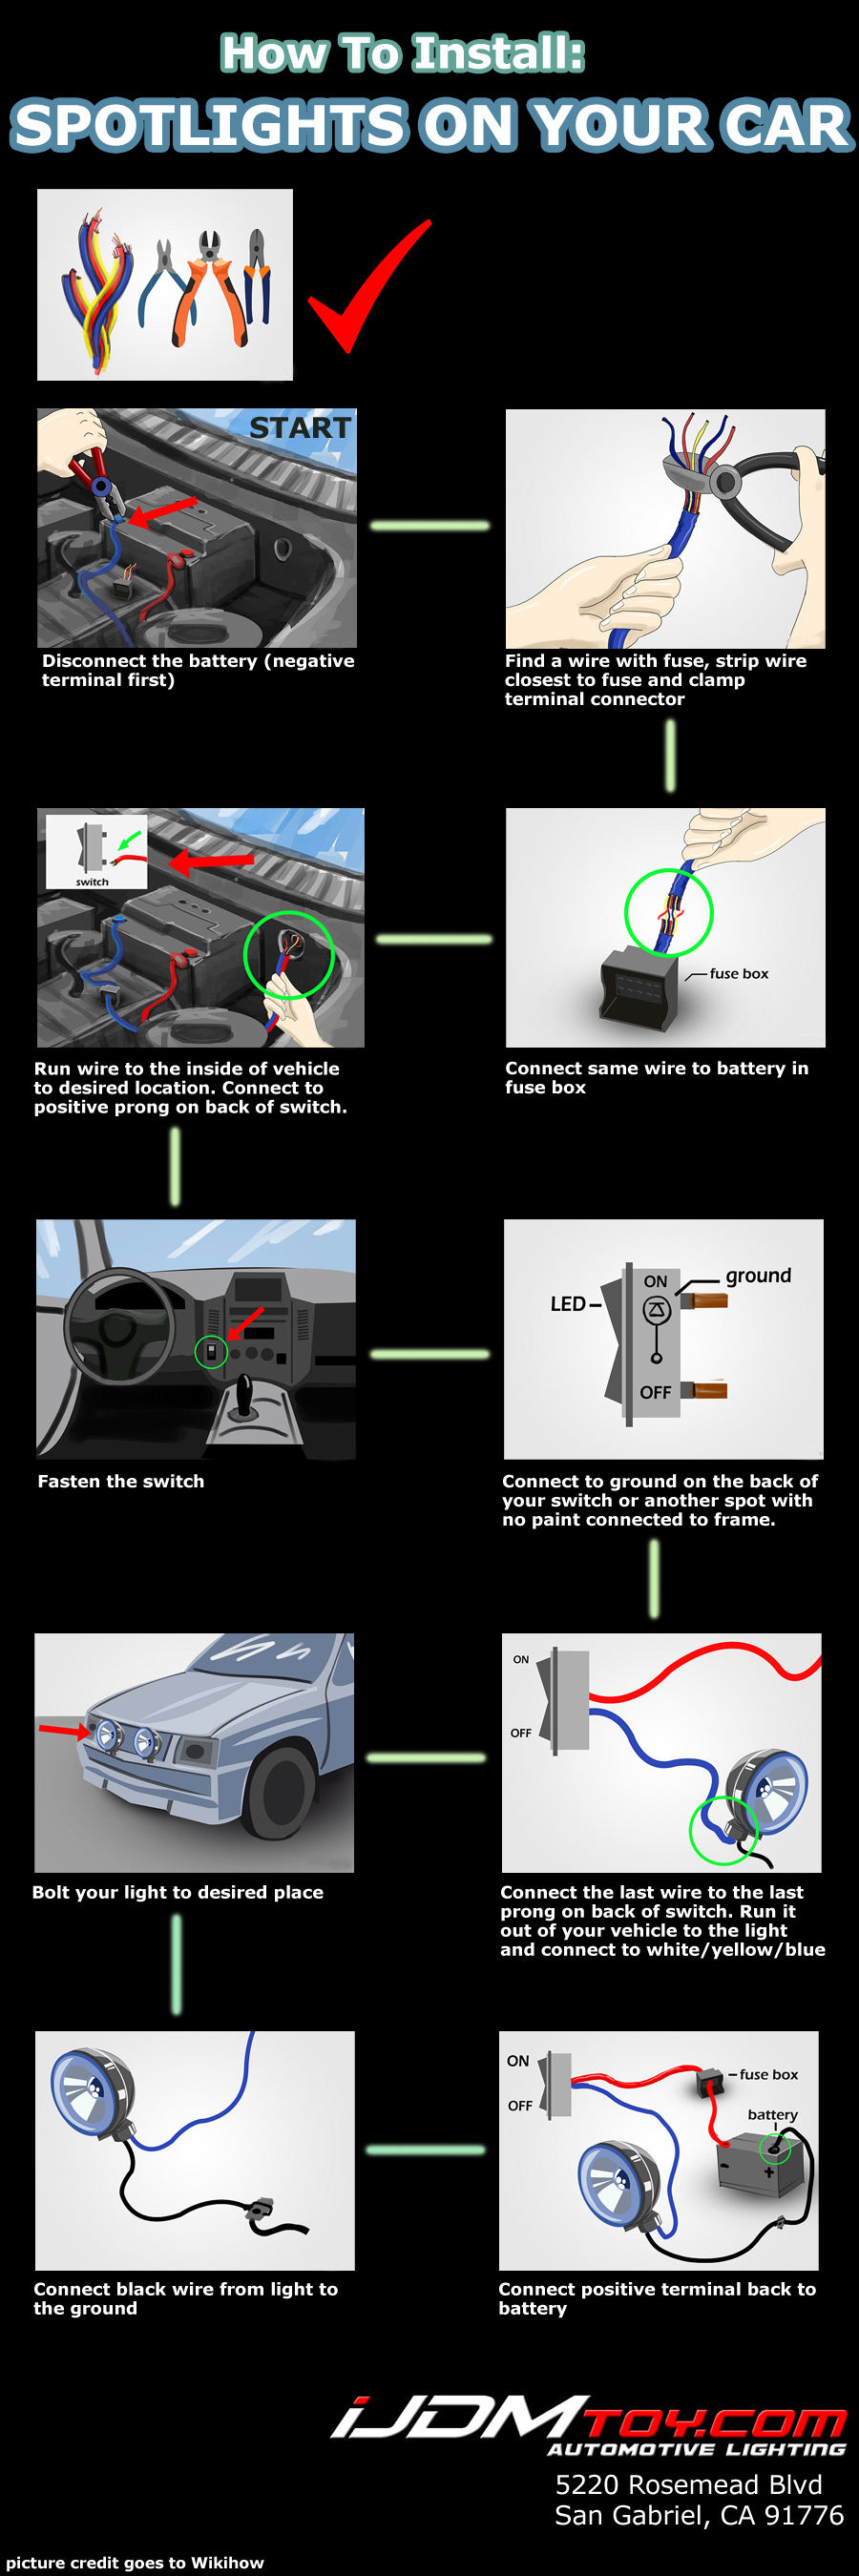 How To Install Spotlights On Your Car Infographic Howto Tutorial Wiring Diagram Installation Installationguide Carlights Led Ijdmtoy Cars